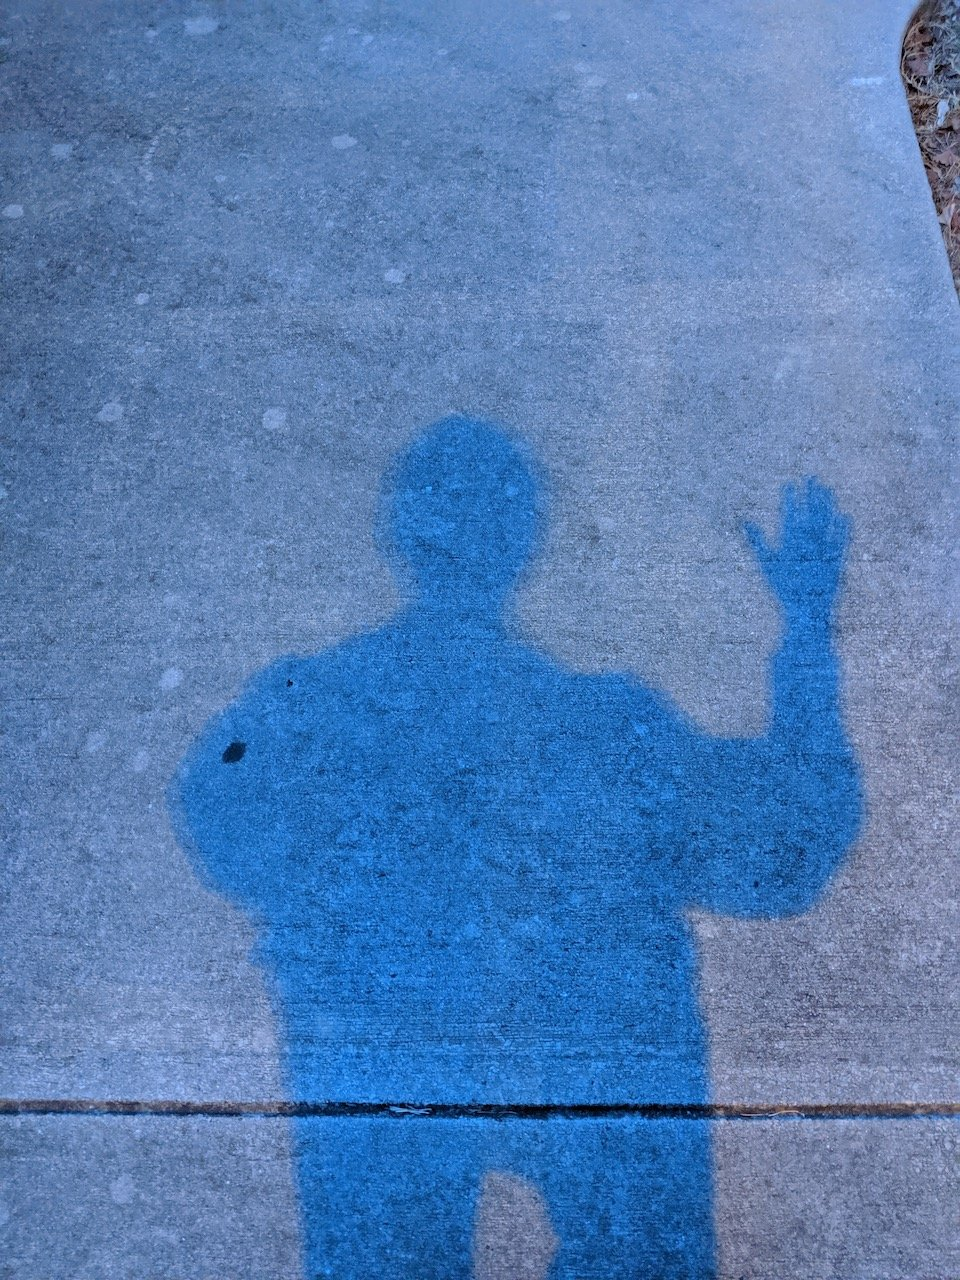 Shadow of standing figure with one arm raised as if waving hello